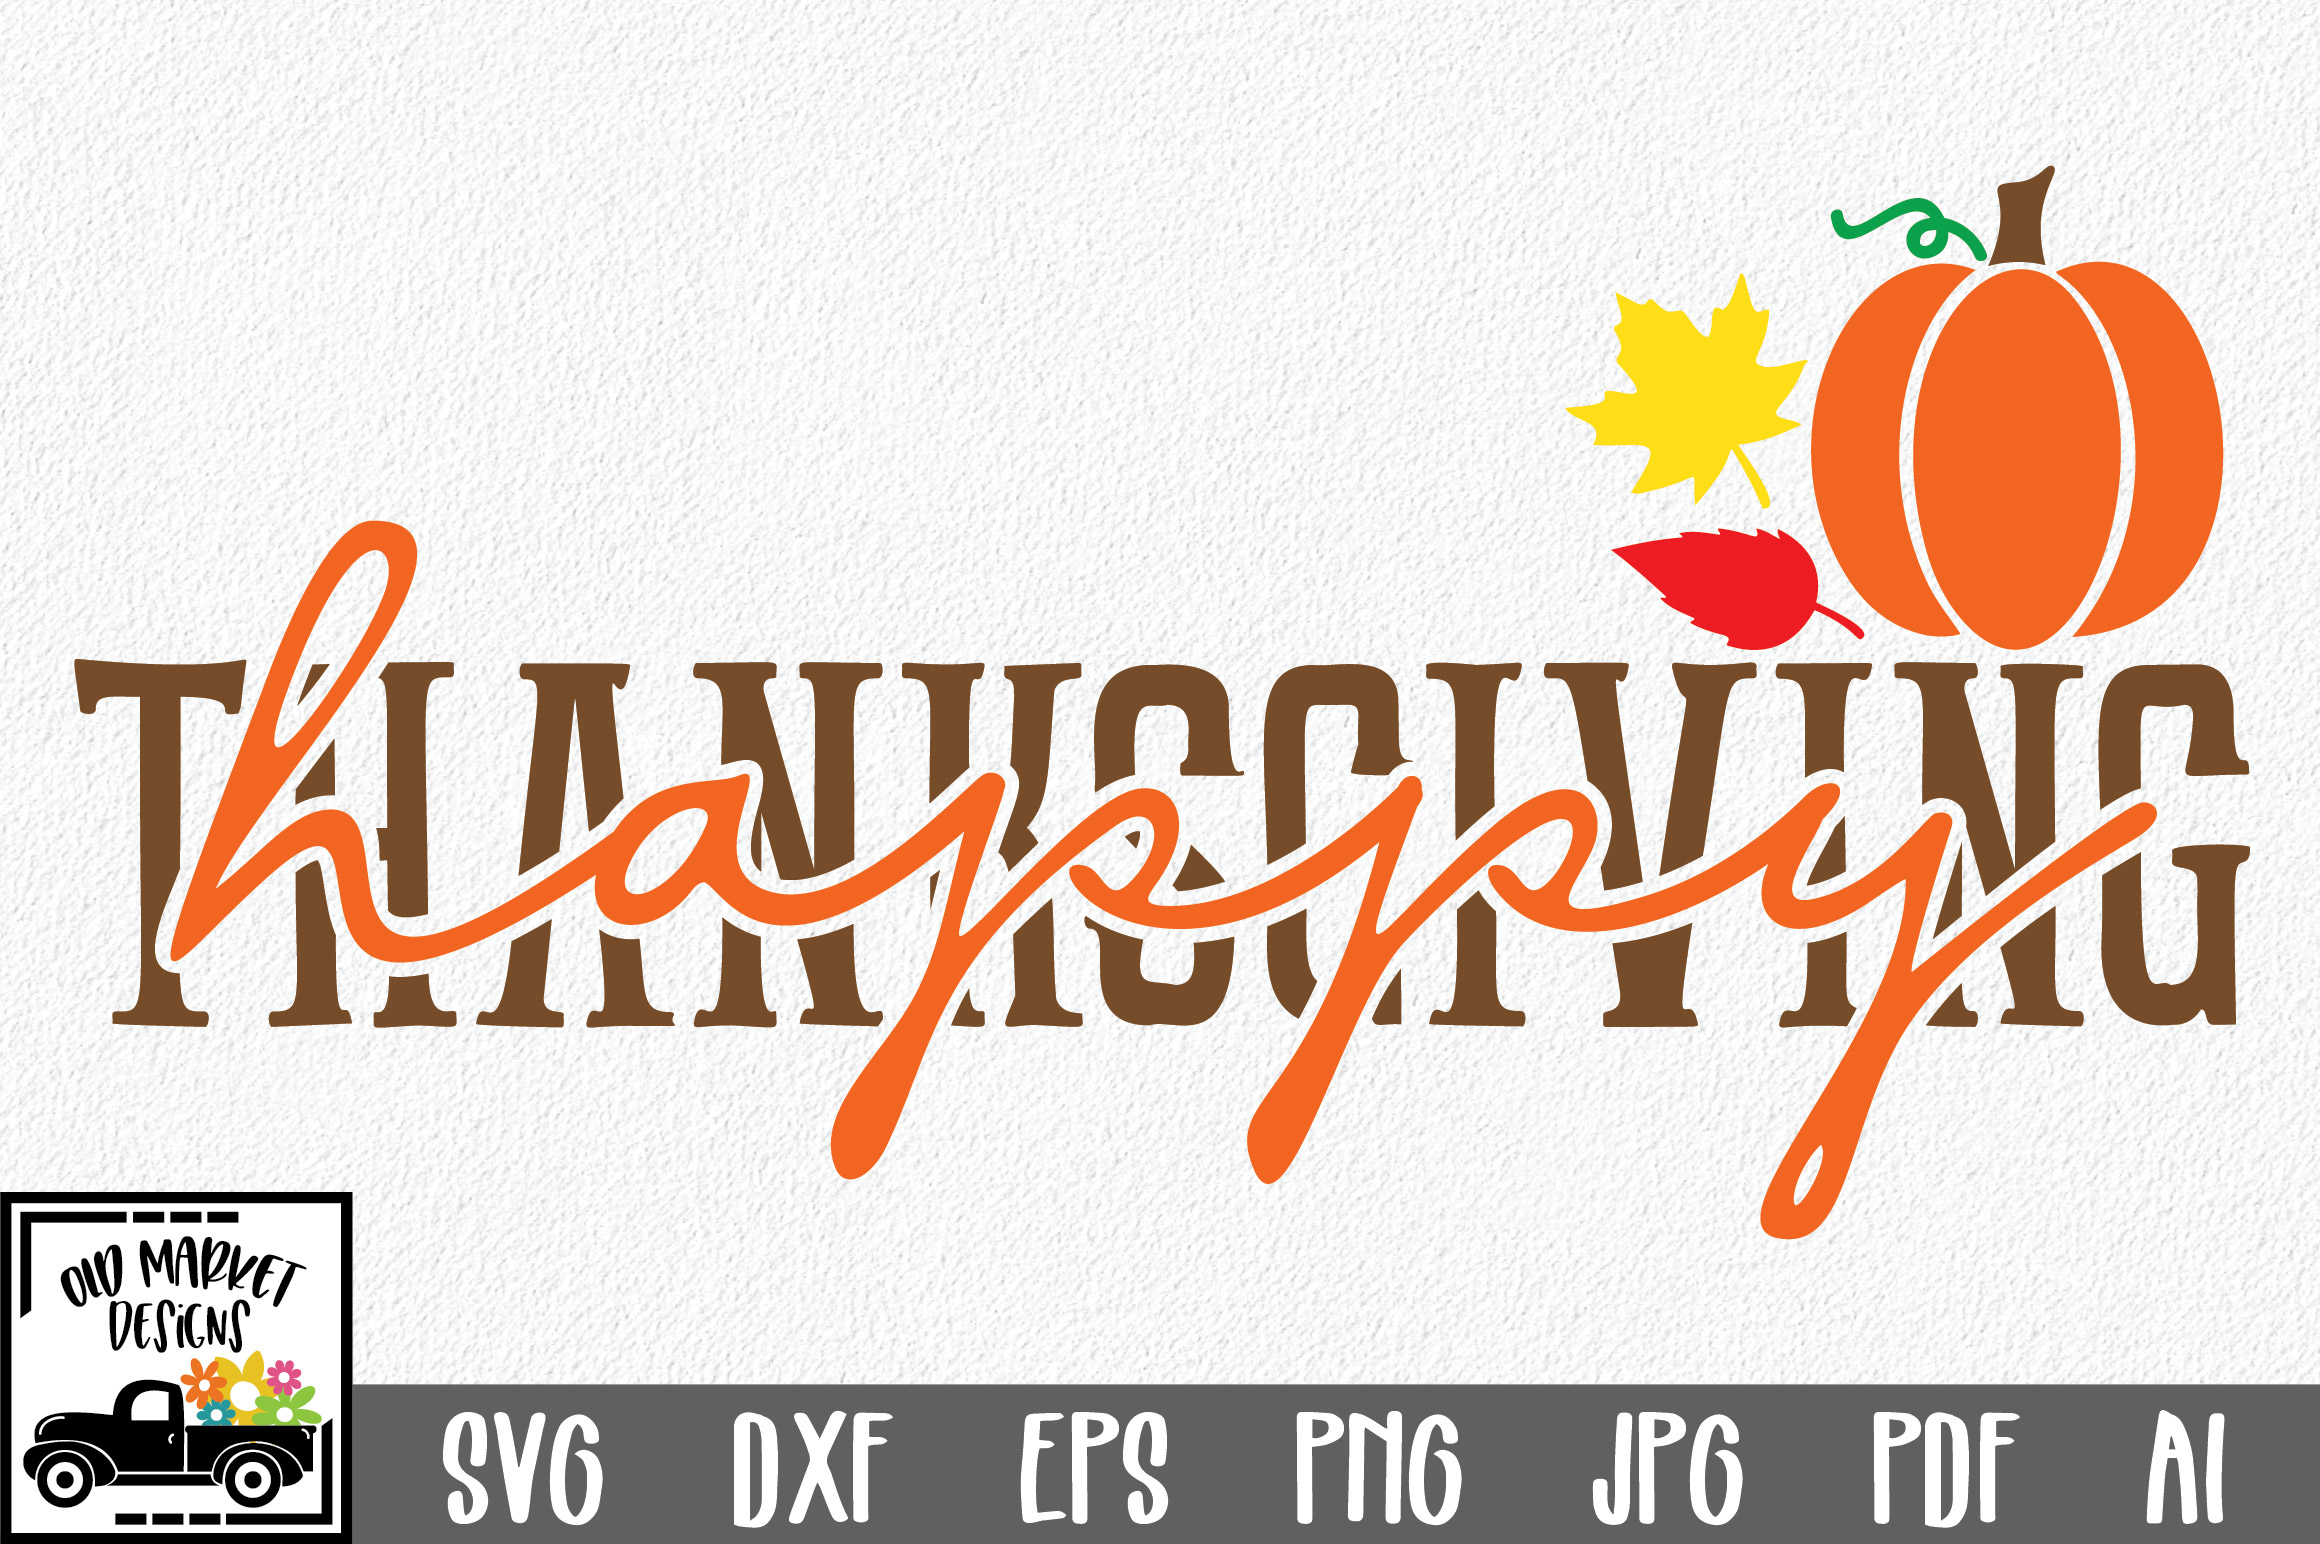 Download Free Happy Thanksgiving Graphic By Oldmarketdesigns Creative Fabrica for Cricut Explore, Silhouette and other cutting machines.